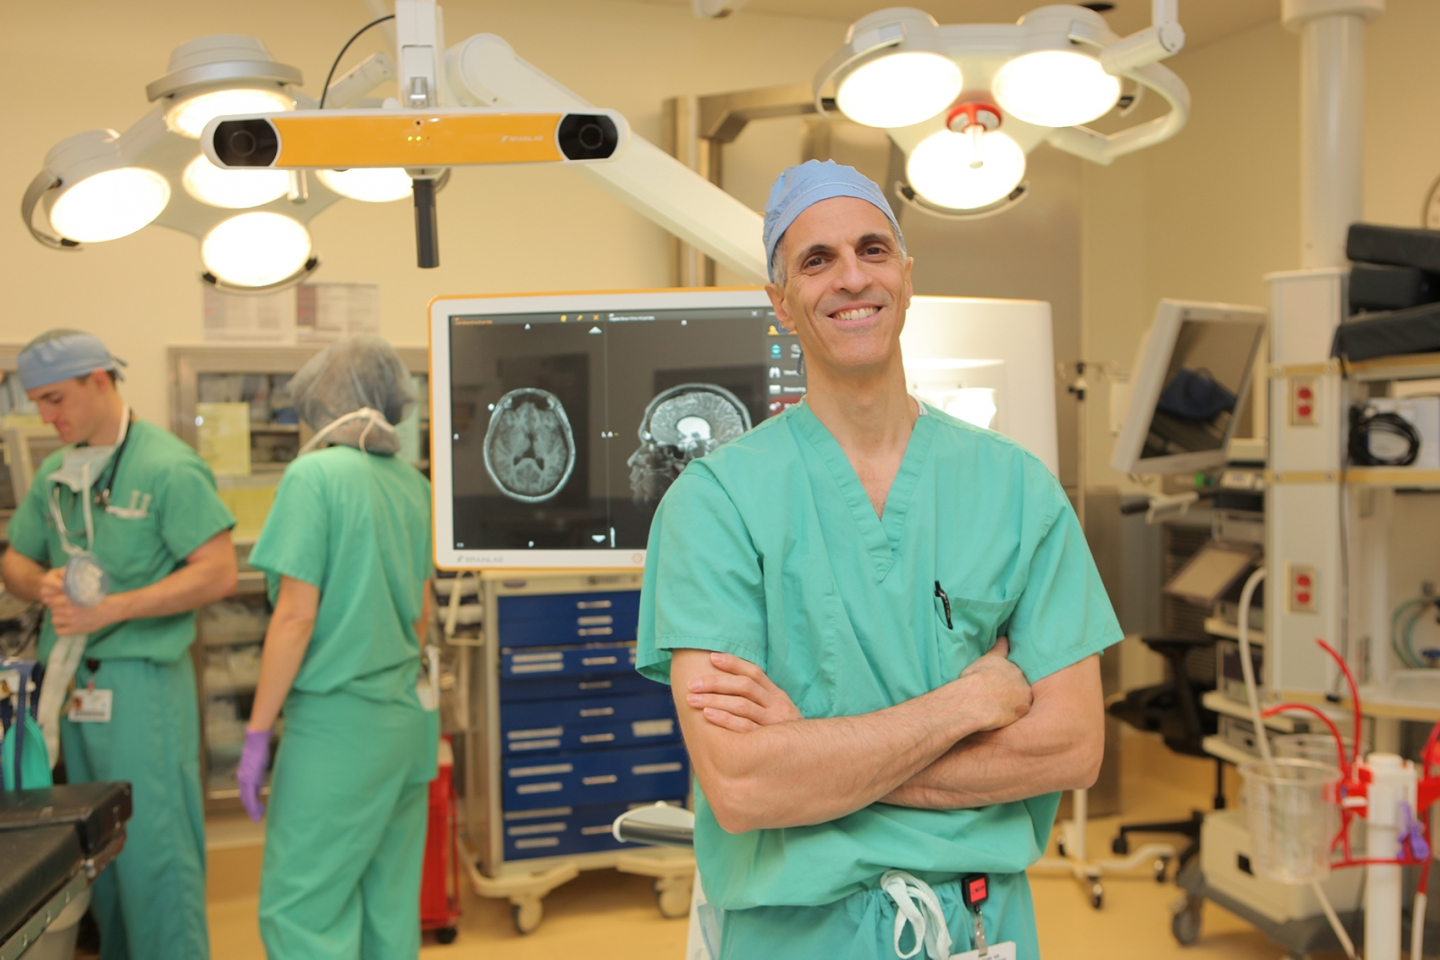 Dr. Mark Souweidane in operating room